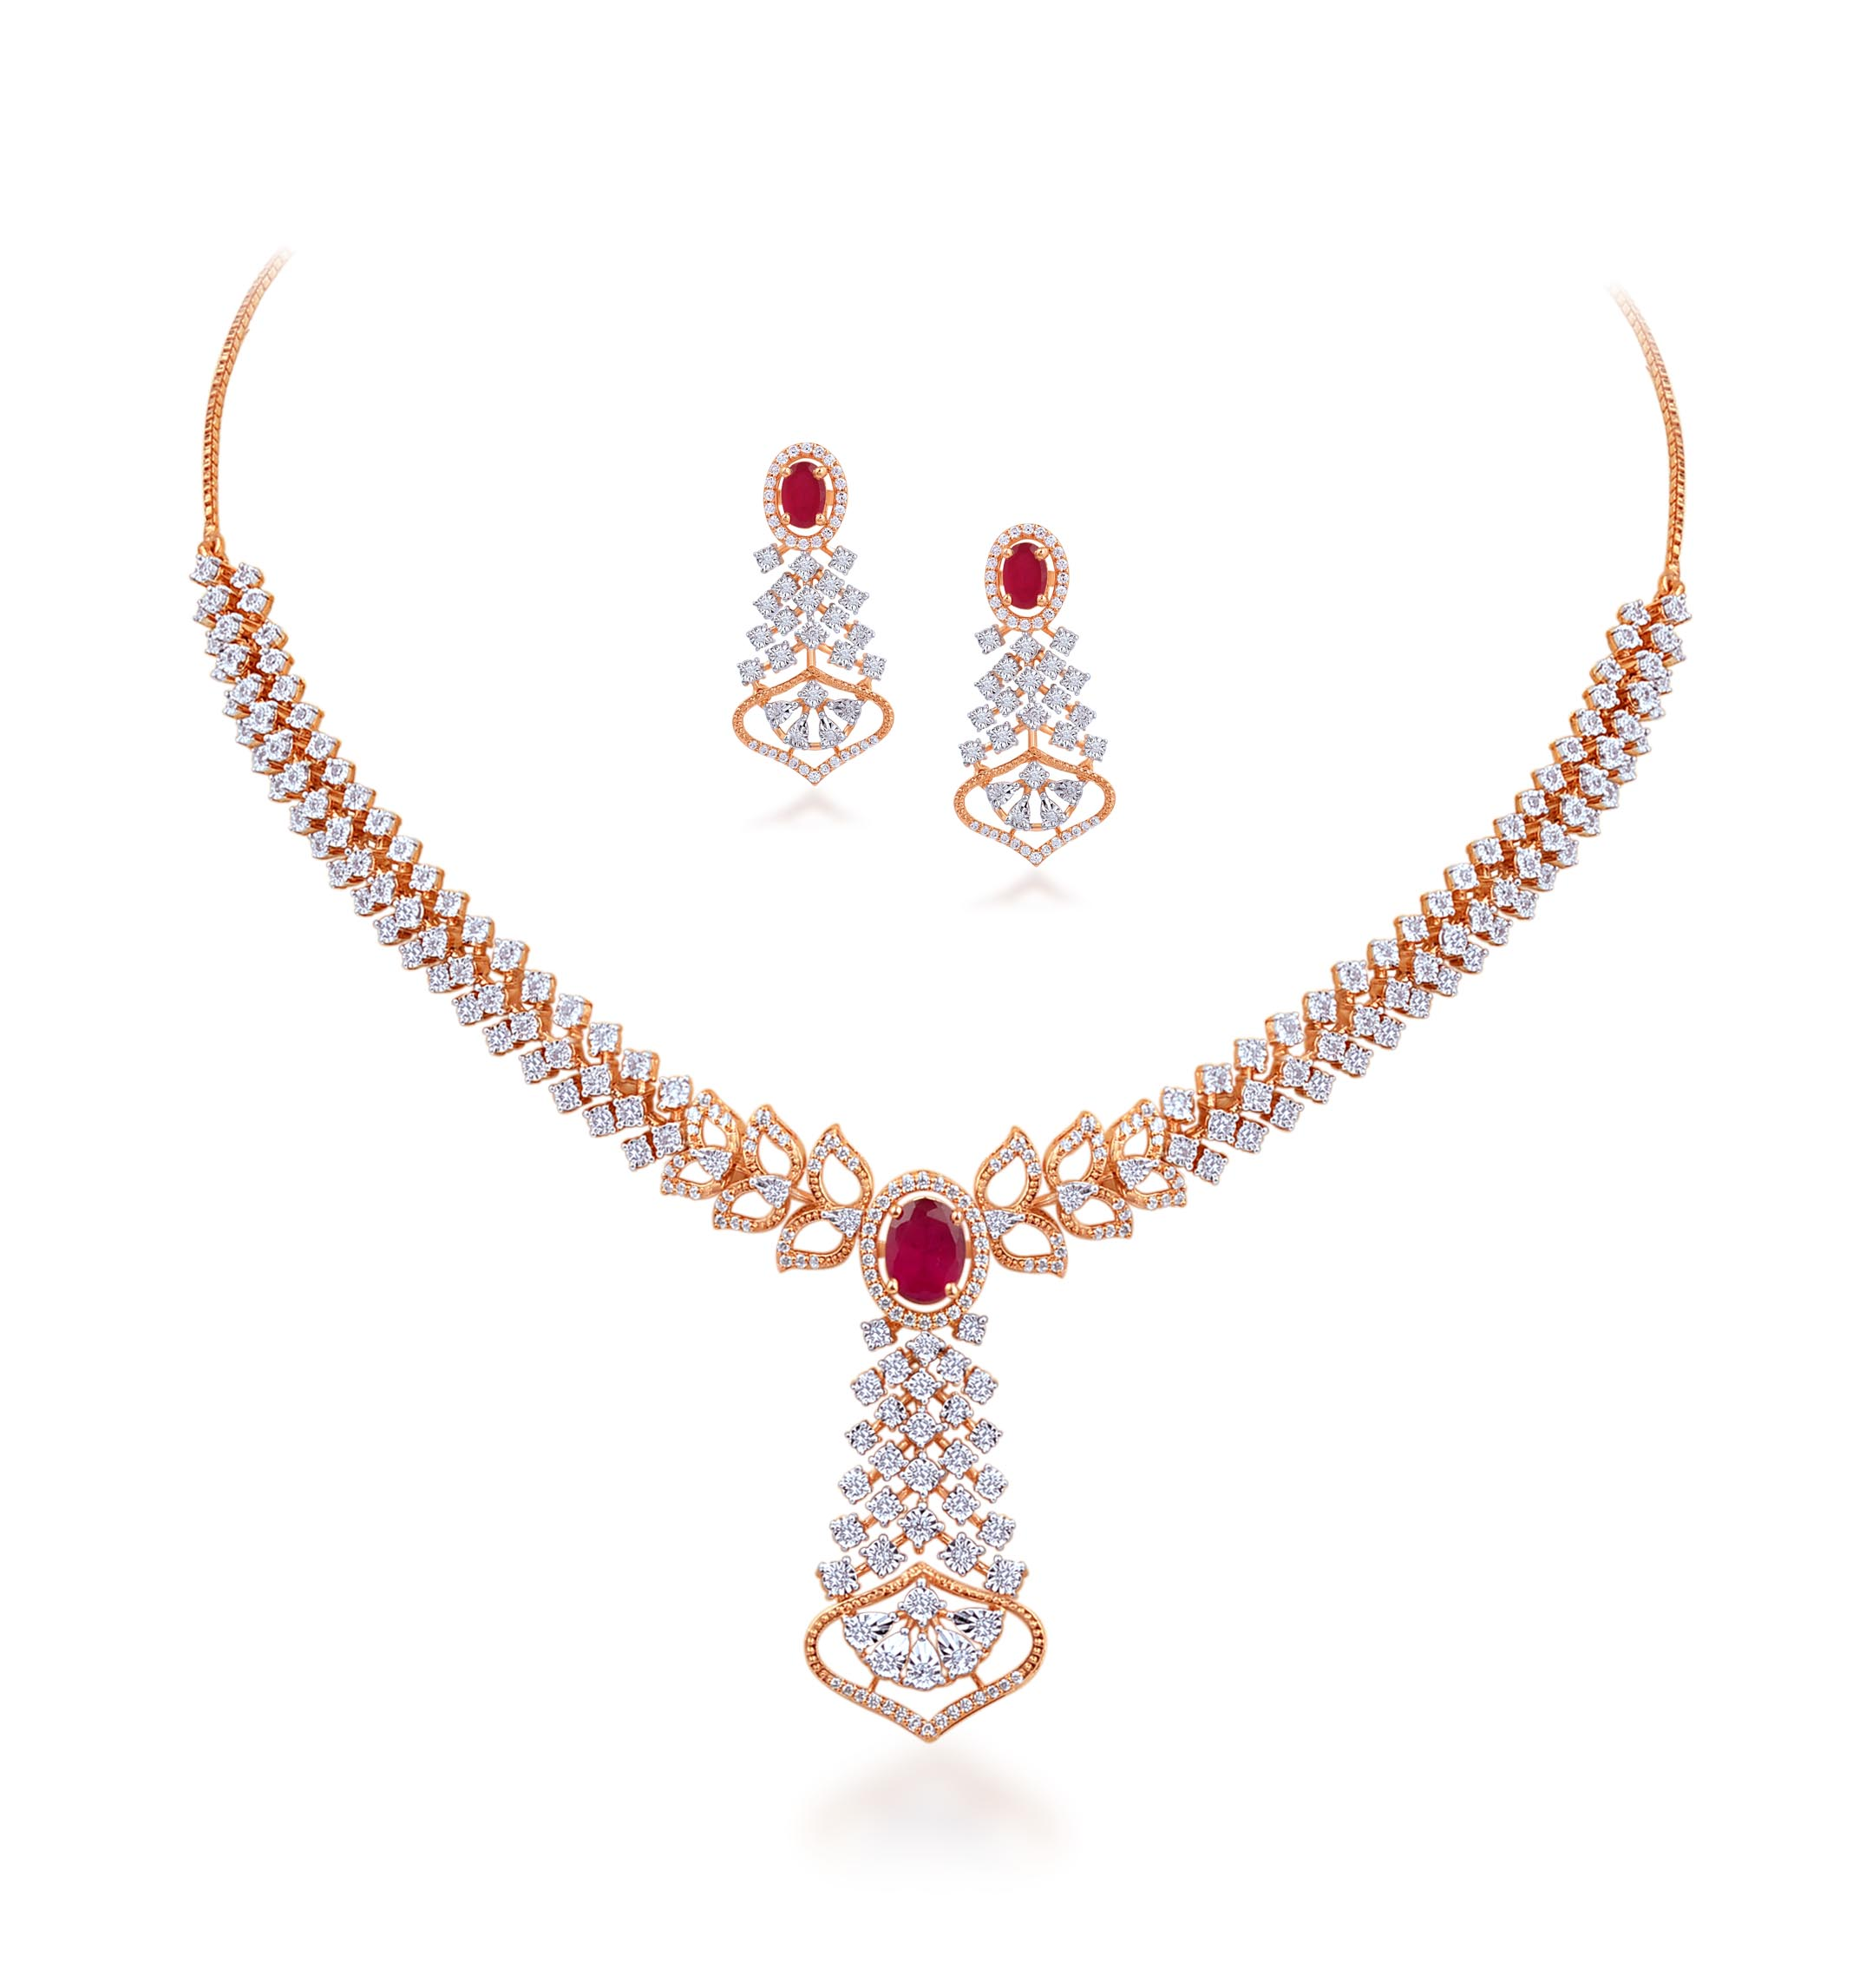 The Radiant Necklace Set